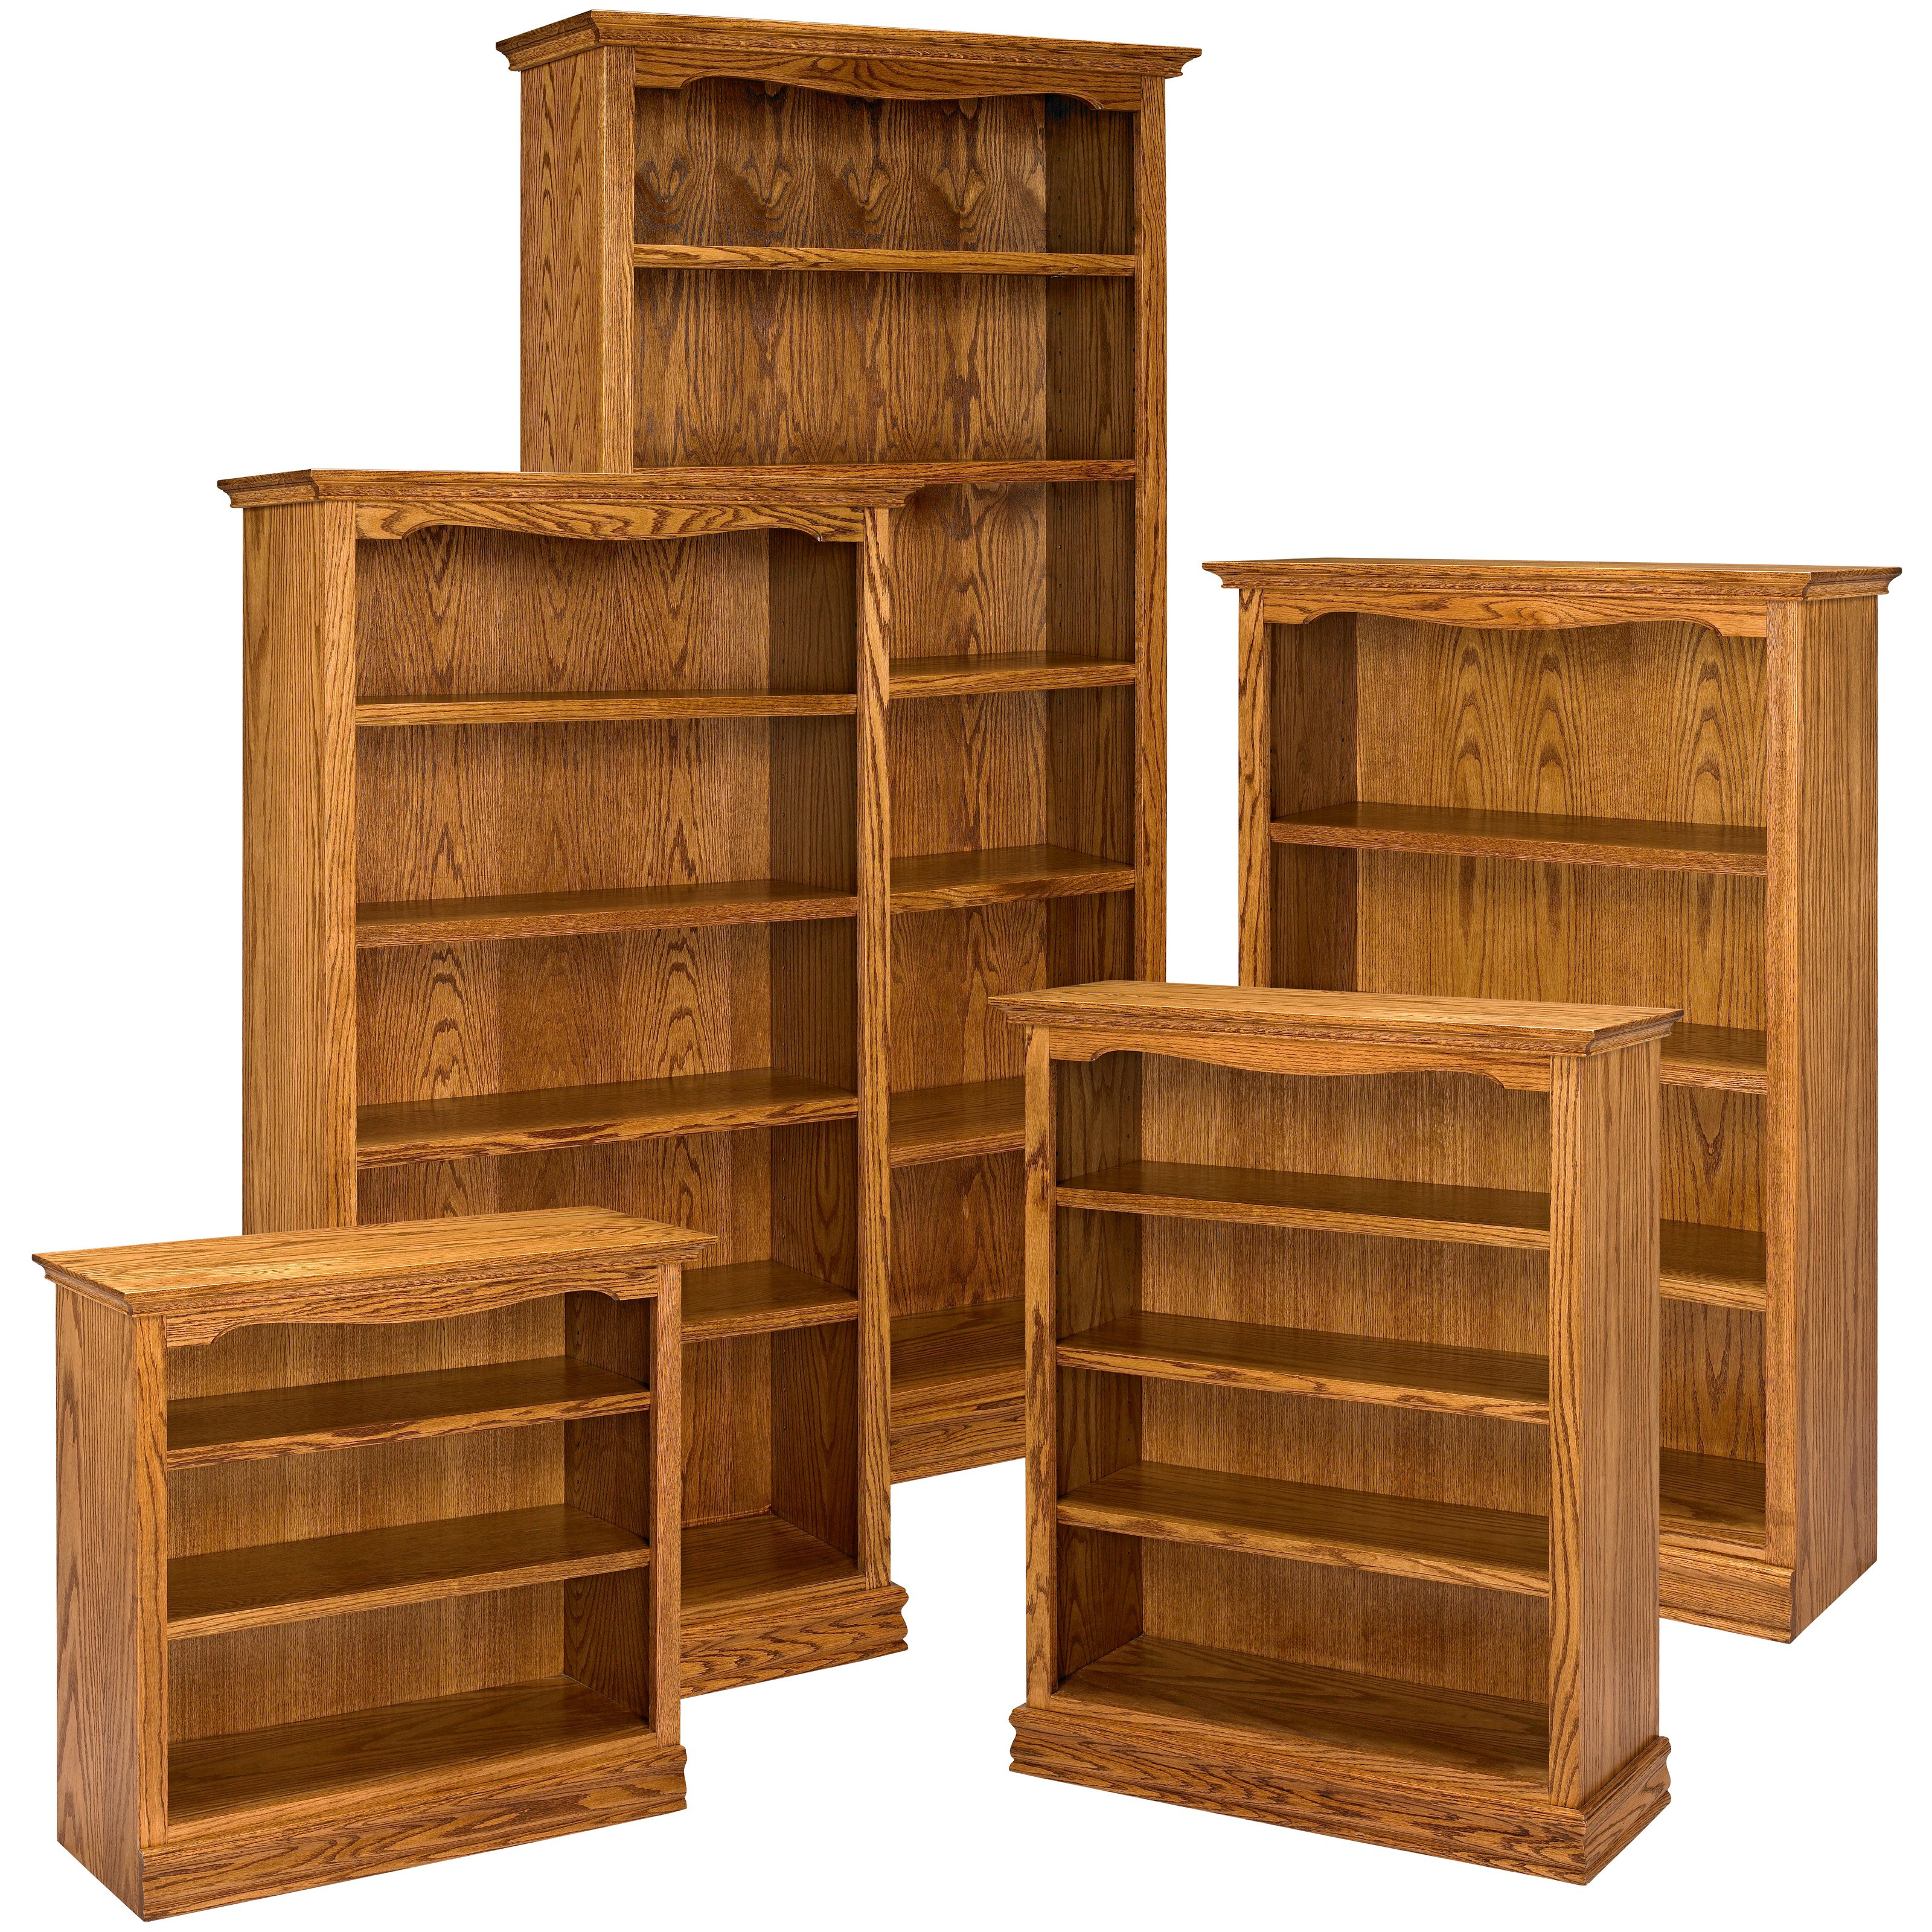 Pictures of Image 1 of 1 solid wood bookcases